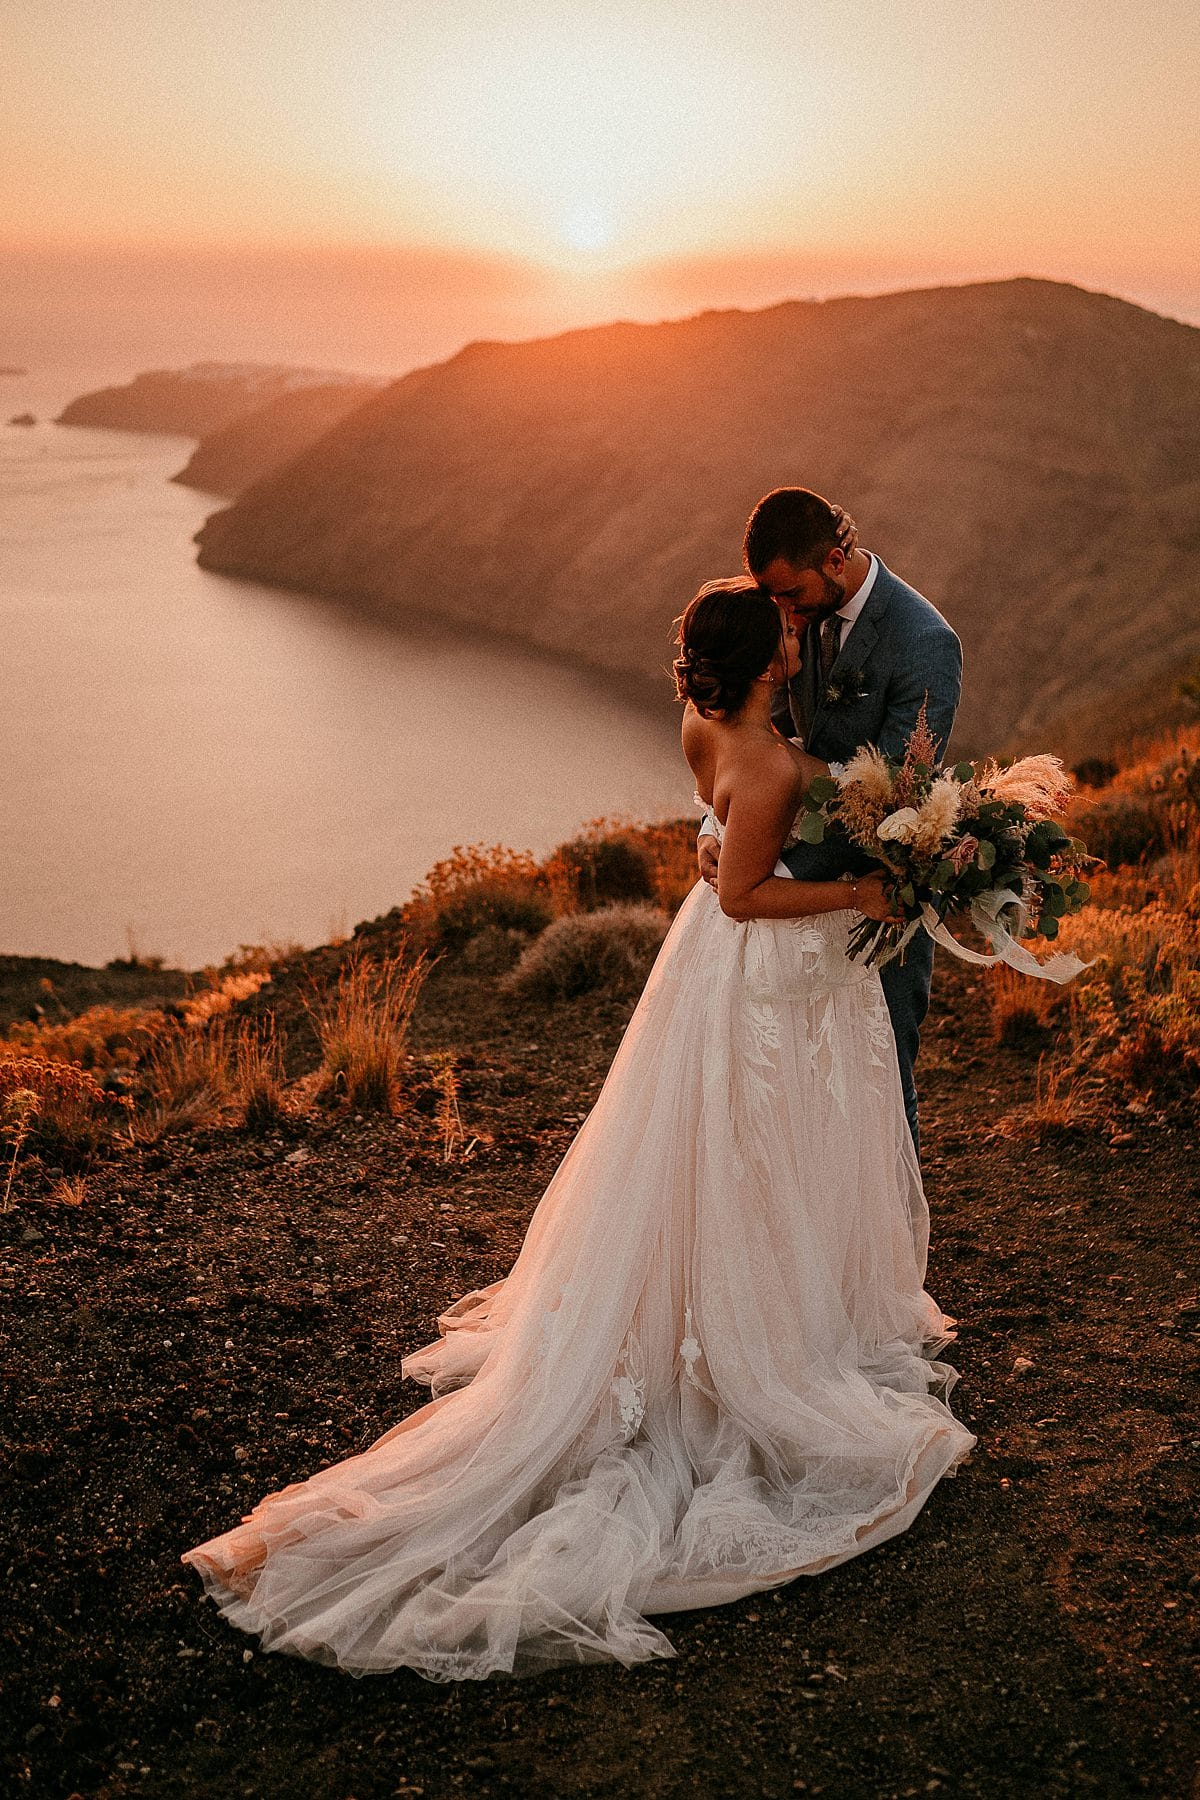 Ultimate guide to getting married in Ireland for foreigners